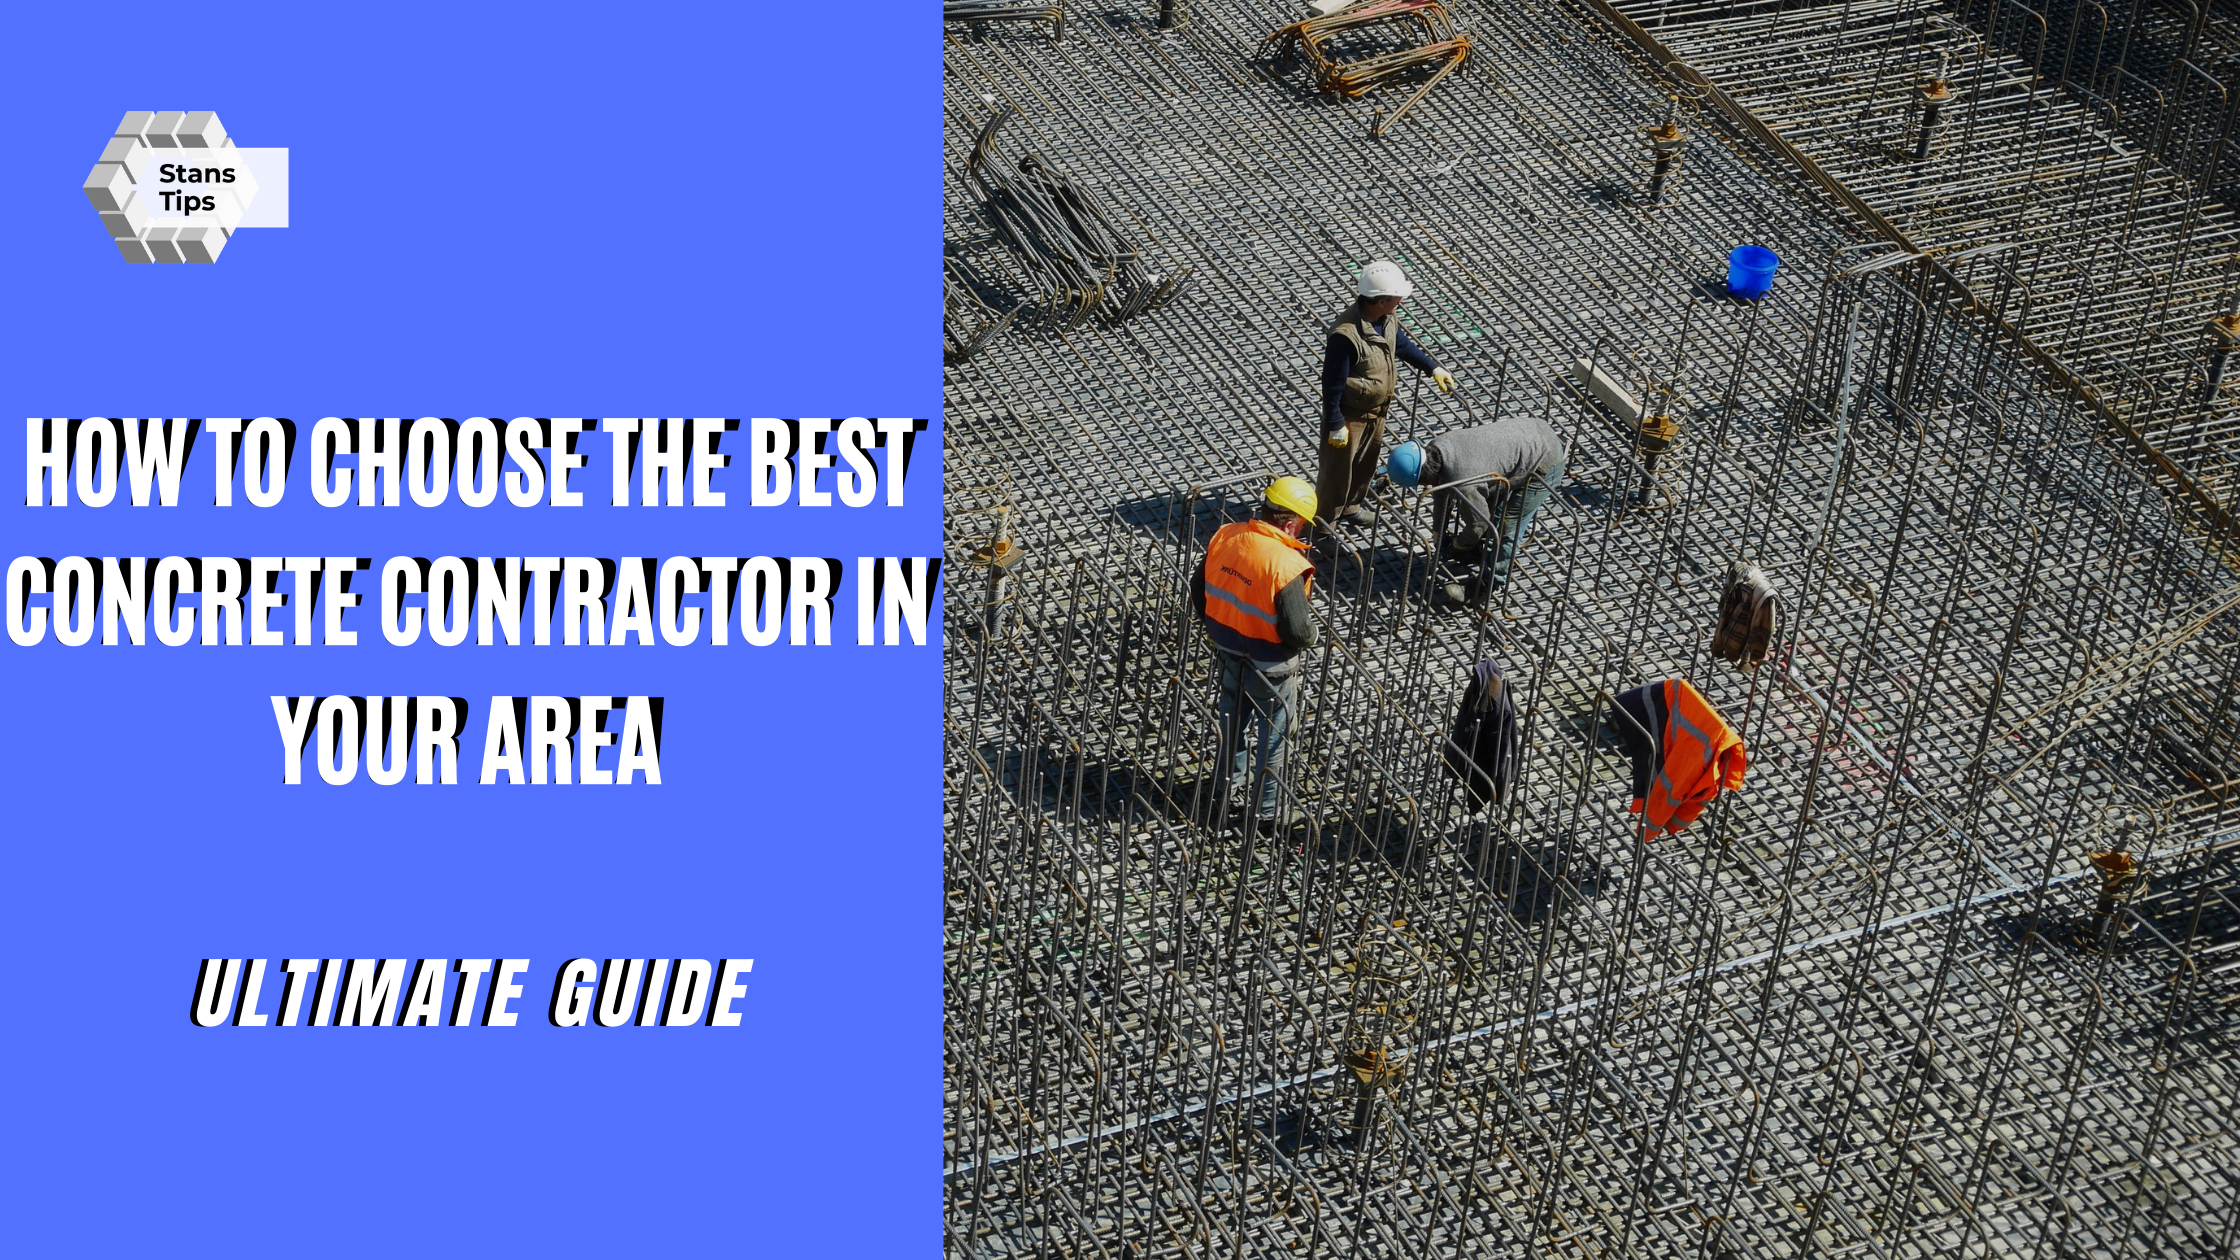 How to Choose the Best Concrete Contractor in Your Area